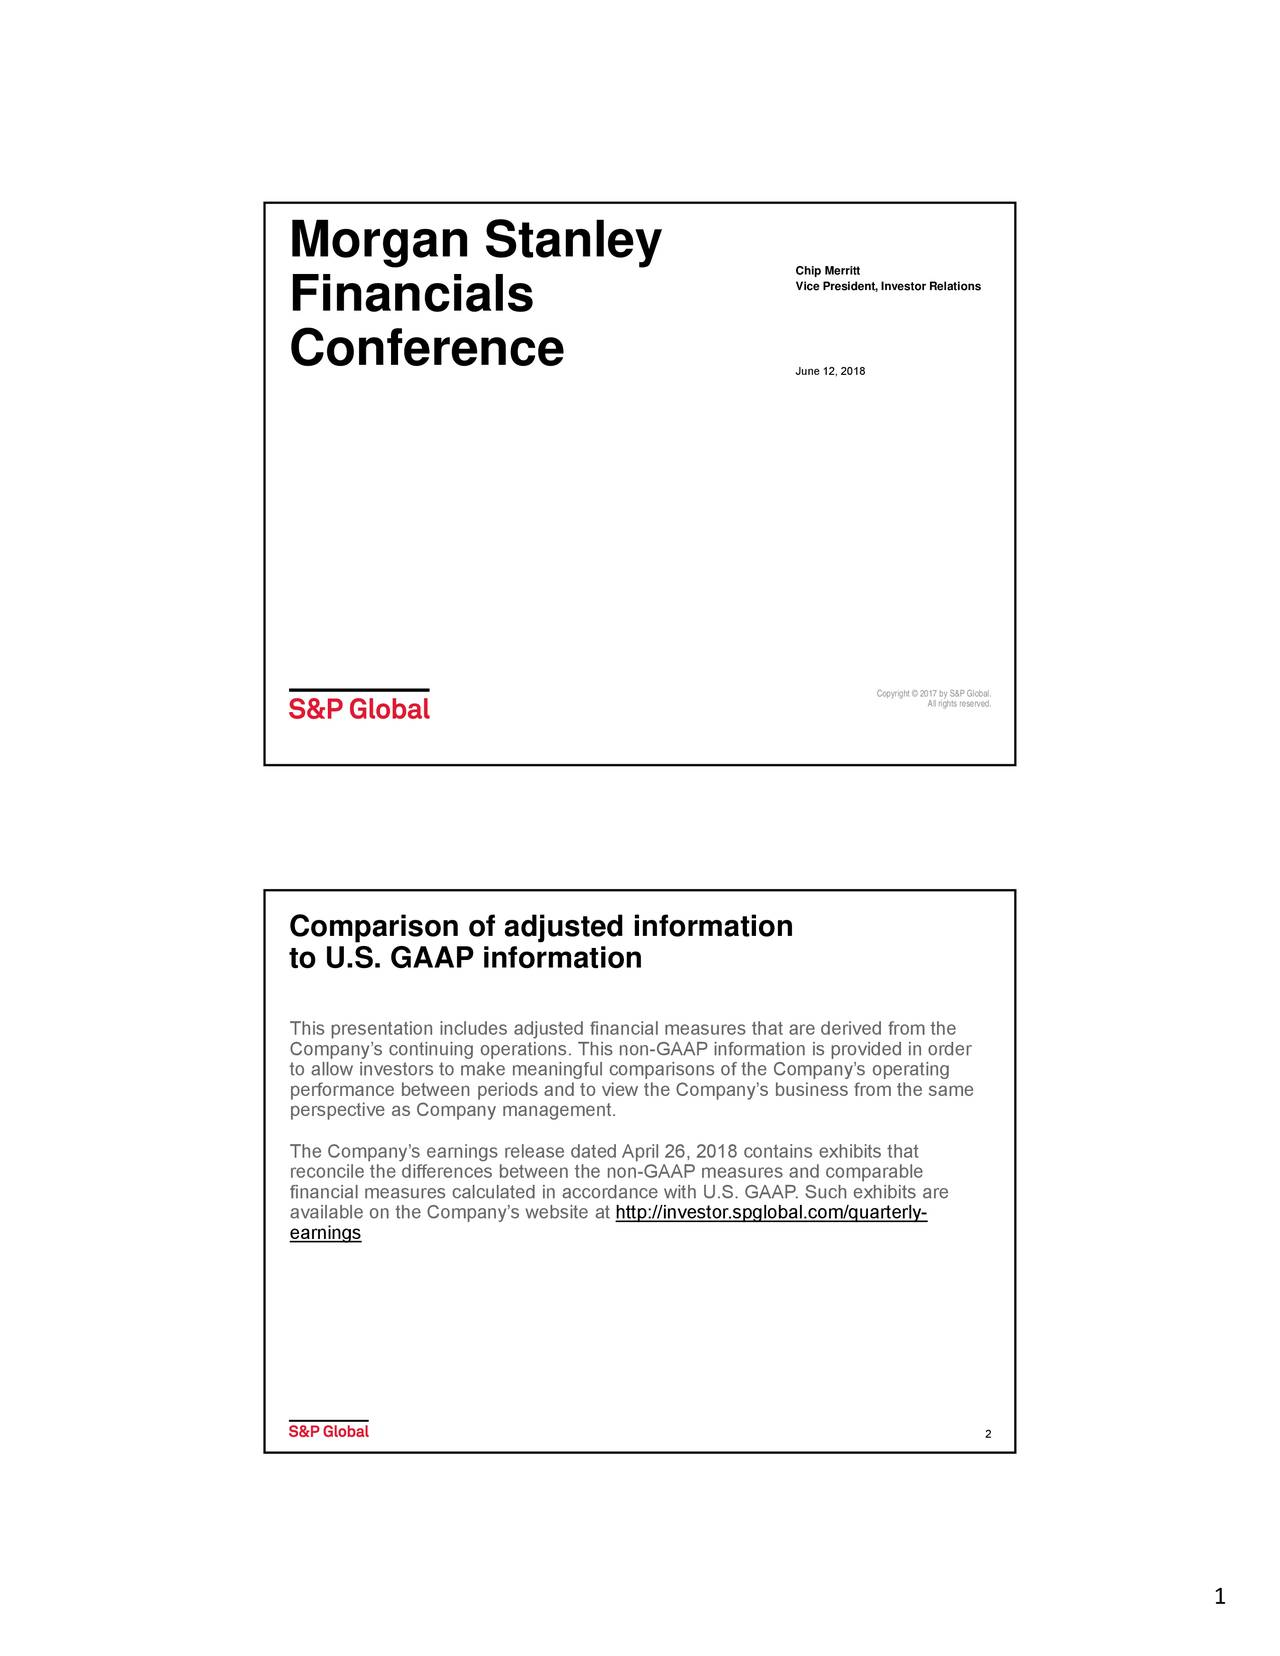 Morgan Stanley Investor Relations >> S P Global Spgi Presents At Morgan Stanley Financials Conference